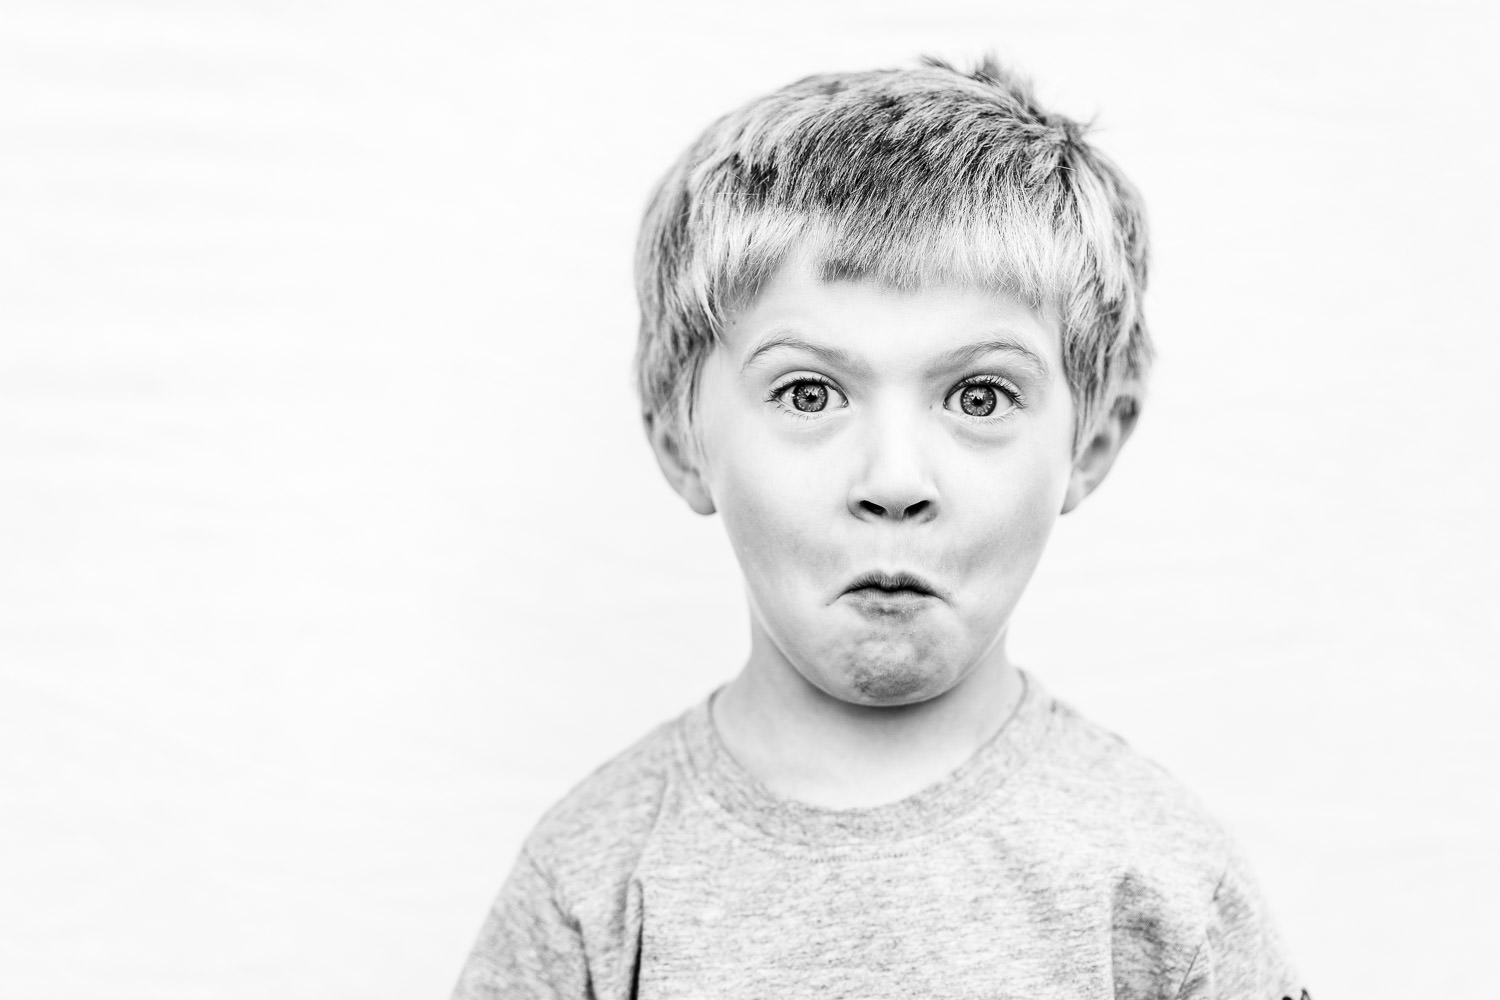 A portrait of a boy with a funny expression.